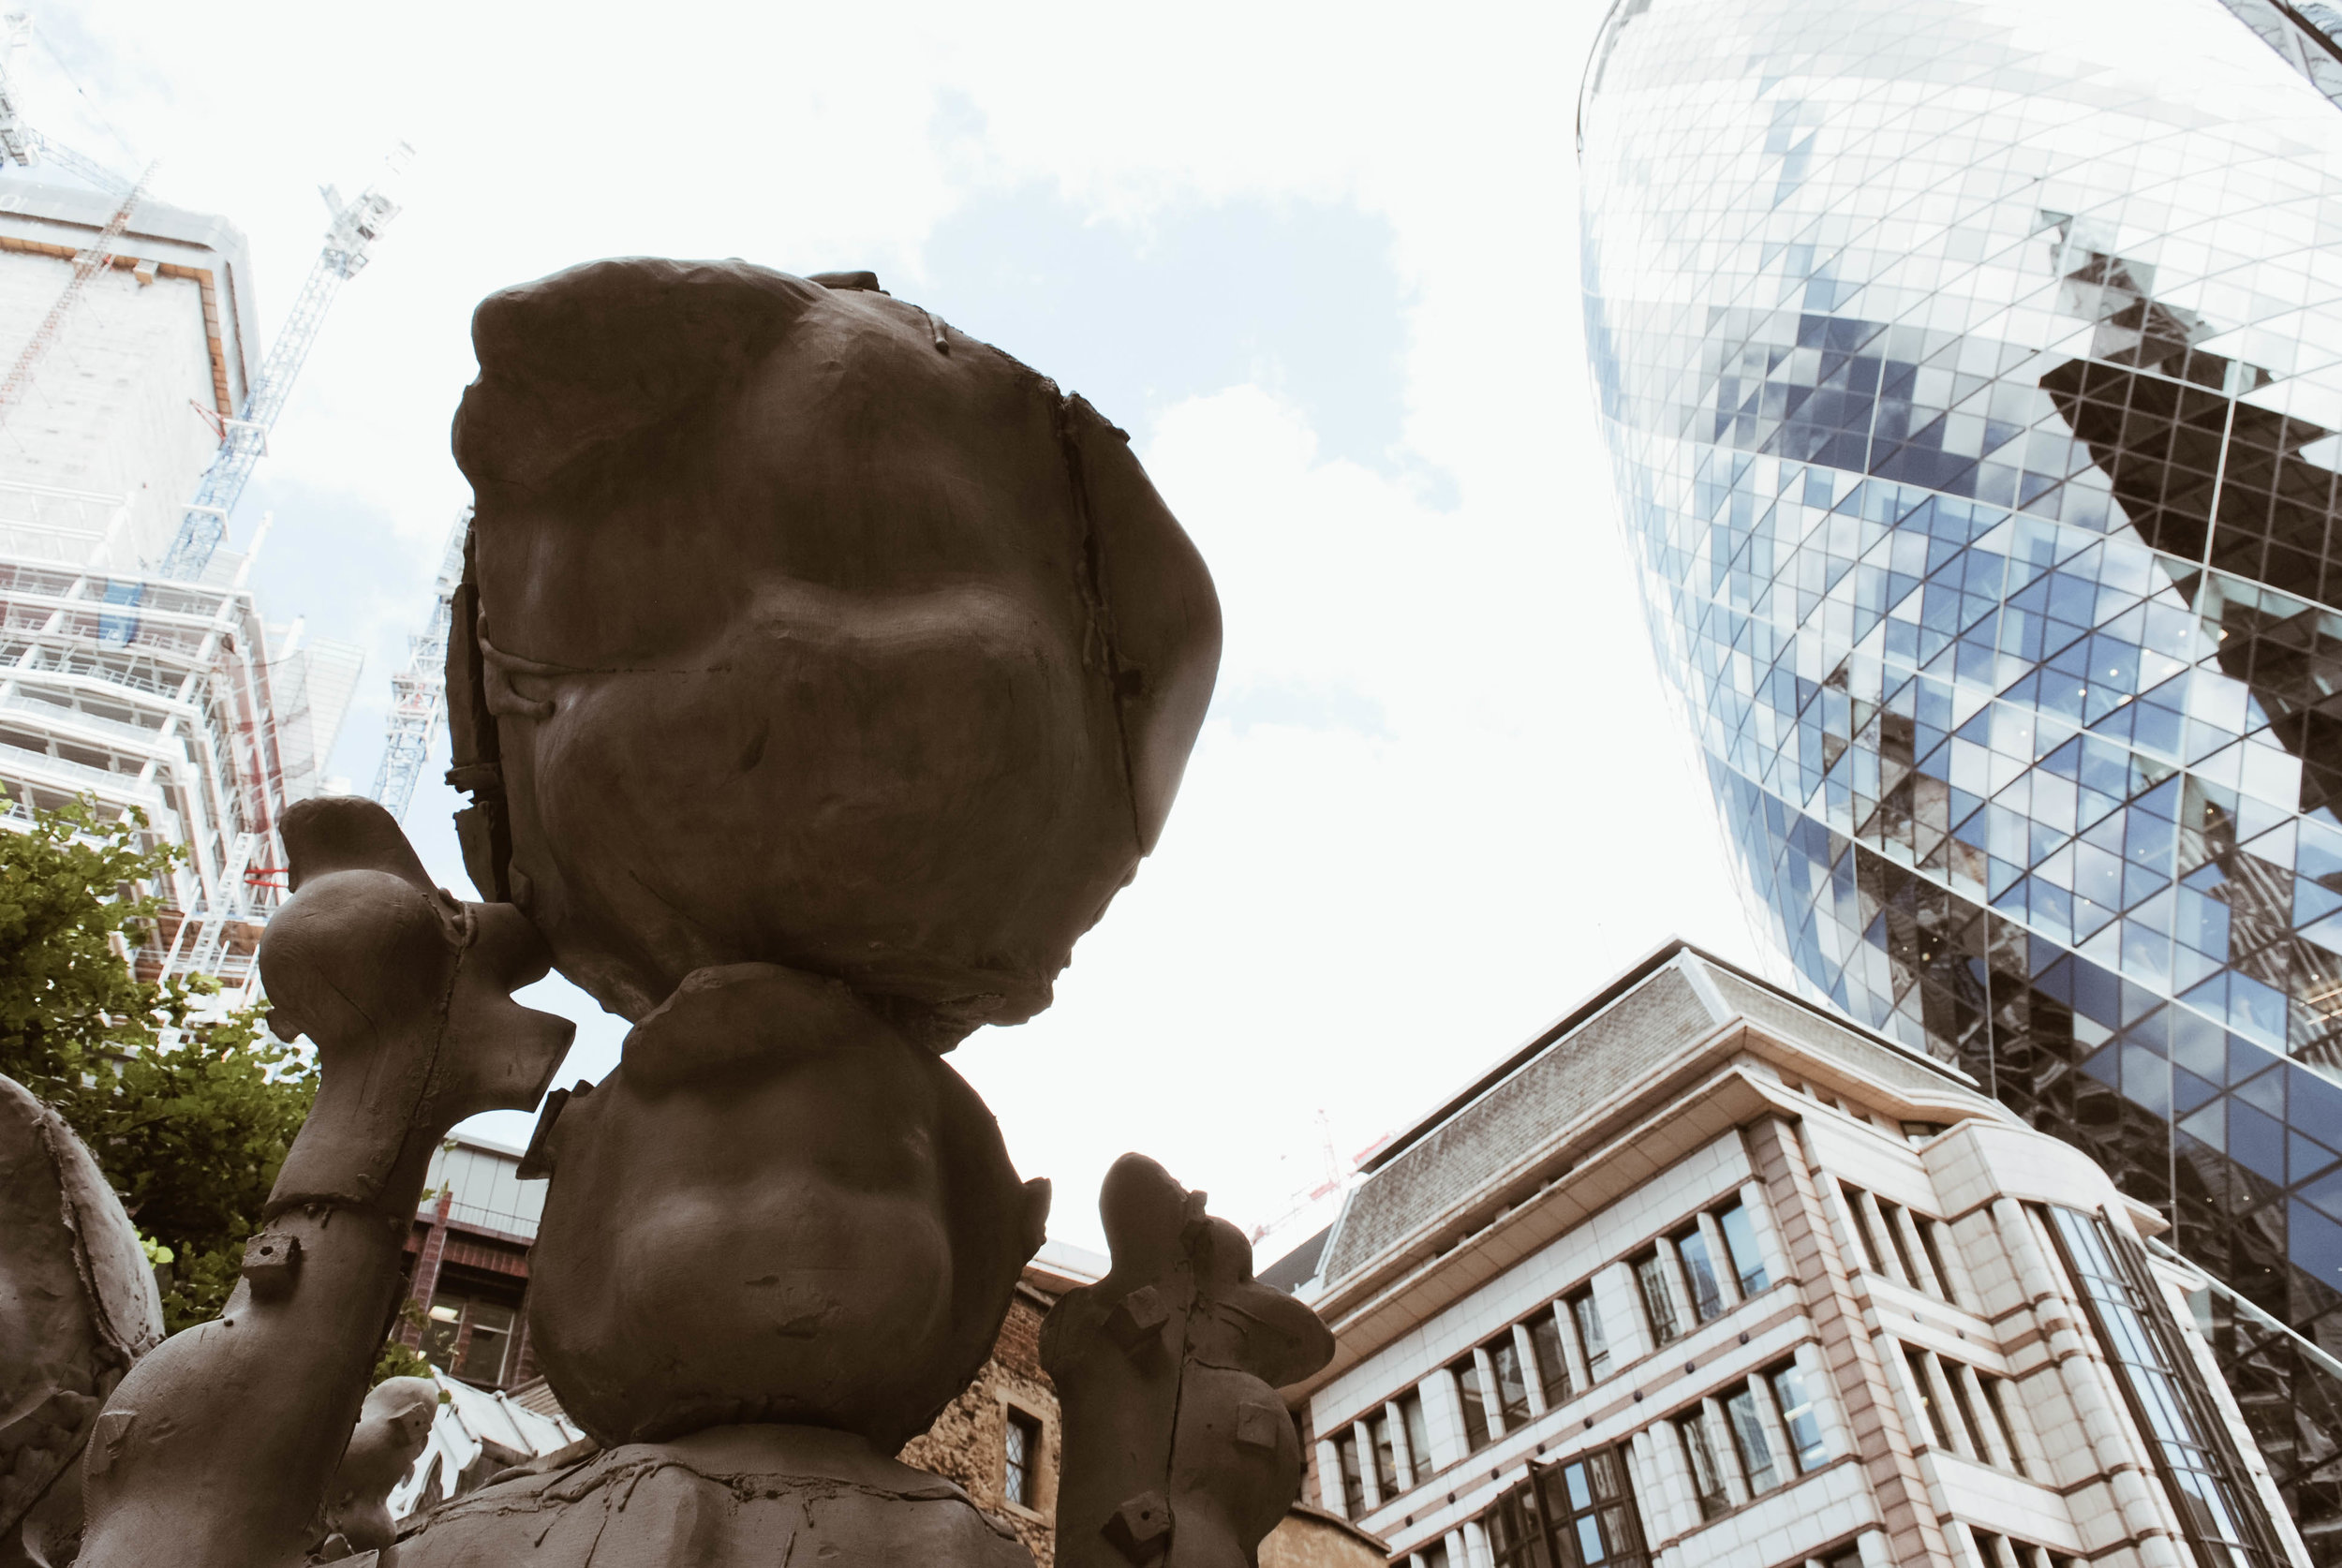 sculpture in the city 2017 (8 of 17).jpg